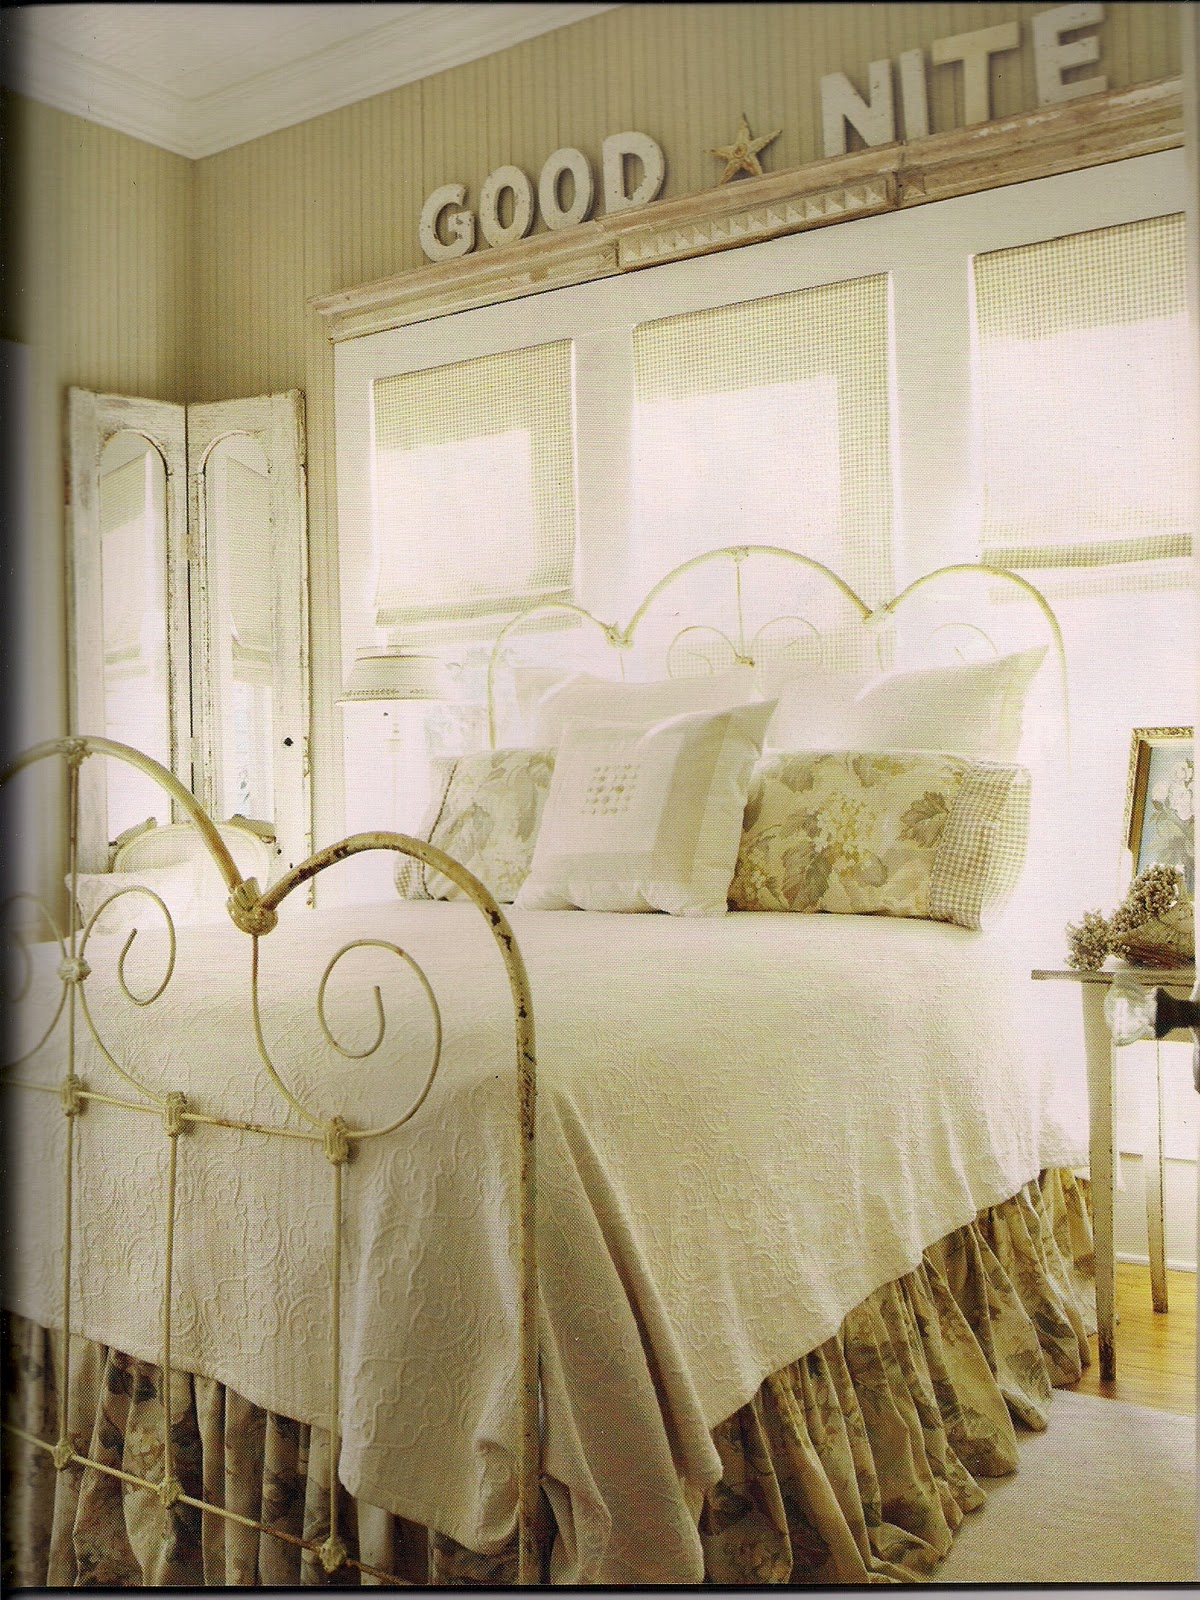 Beautiful Bed dreaming of beautiful beds